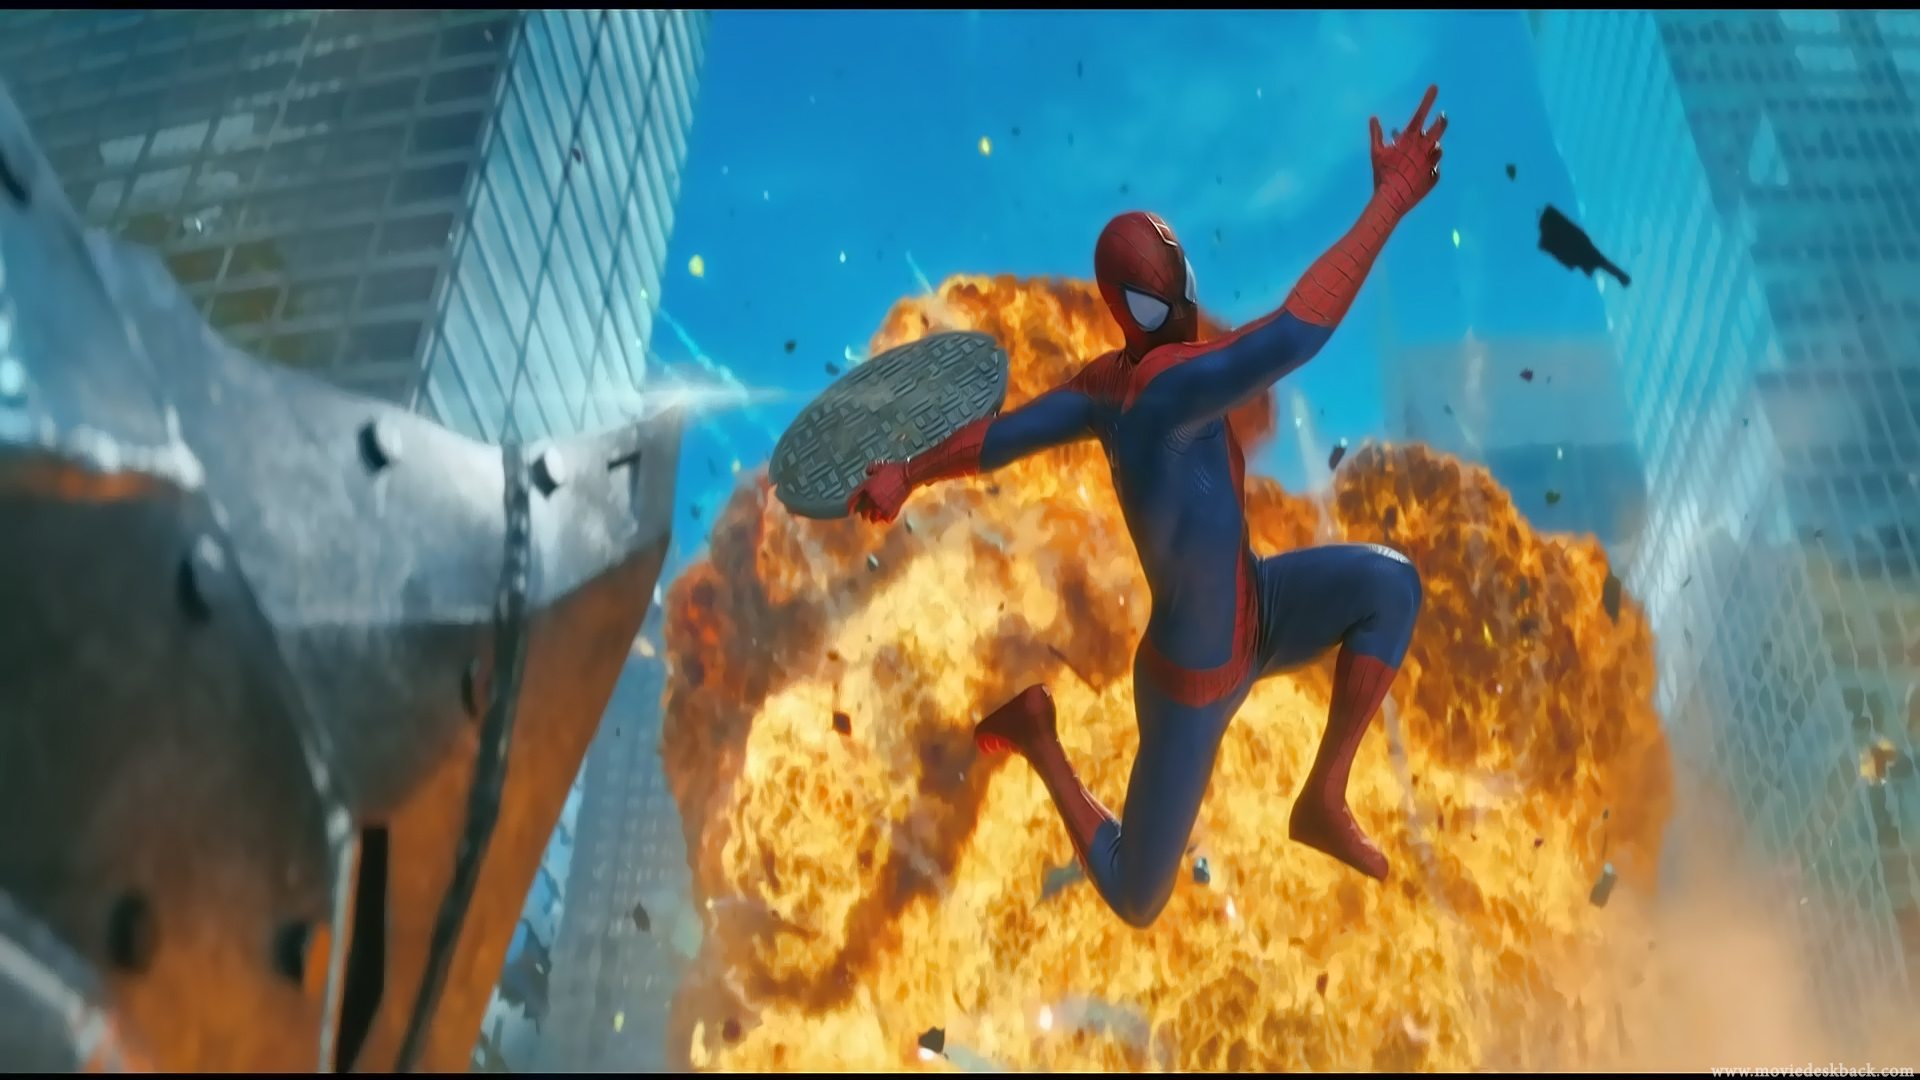 New Amazing Spider-Man 2 Featurettes That Actually Make The Movie Look Promising